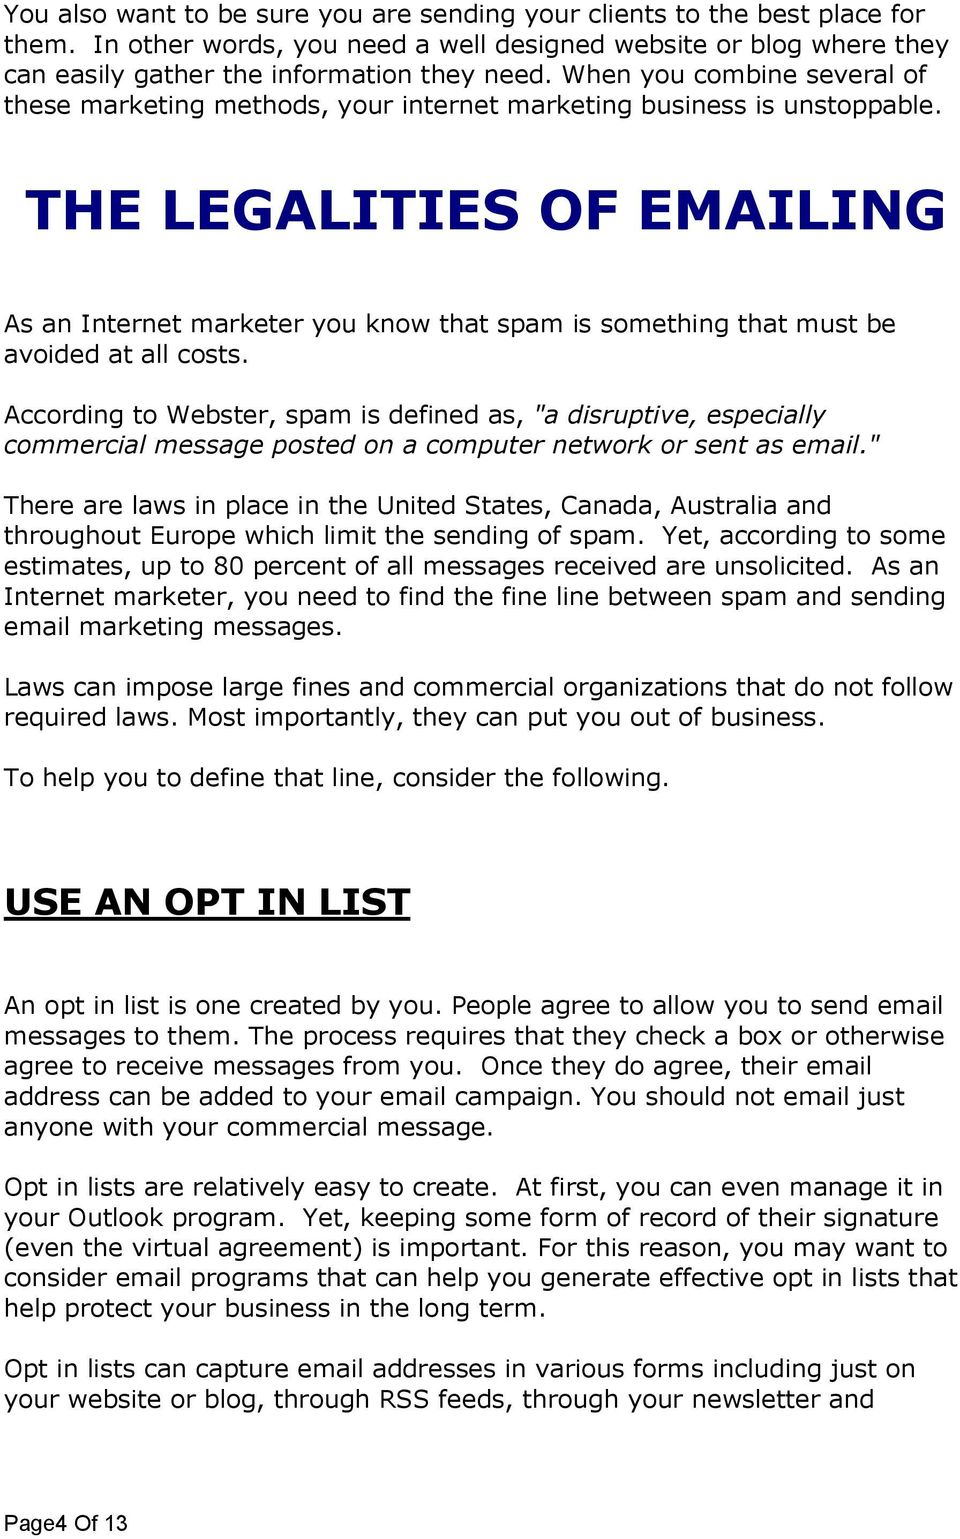 THE LEGALITIES OF EMAILING As an Internet marketer you know that spam is something that must be avoided at all costs.